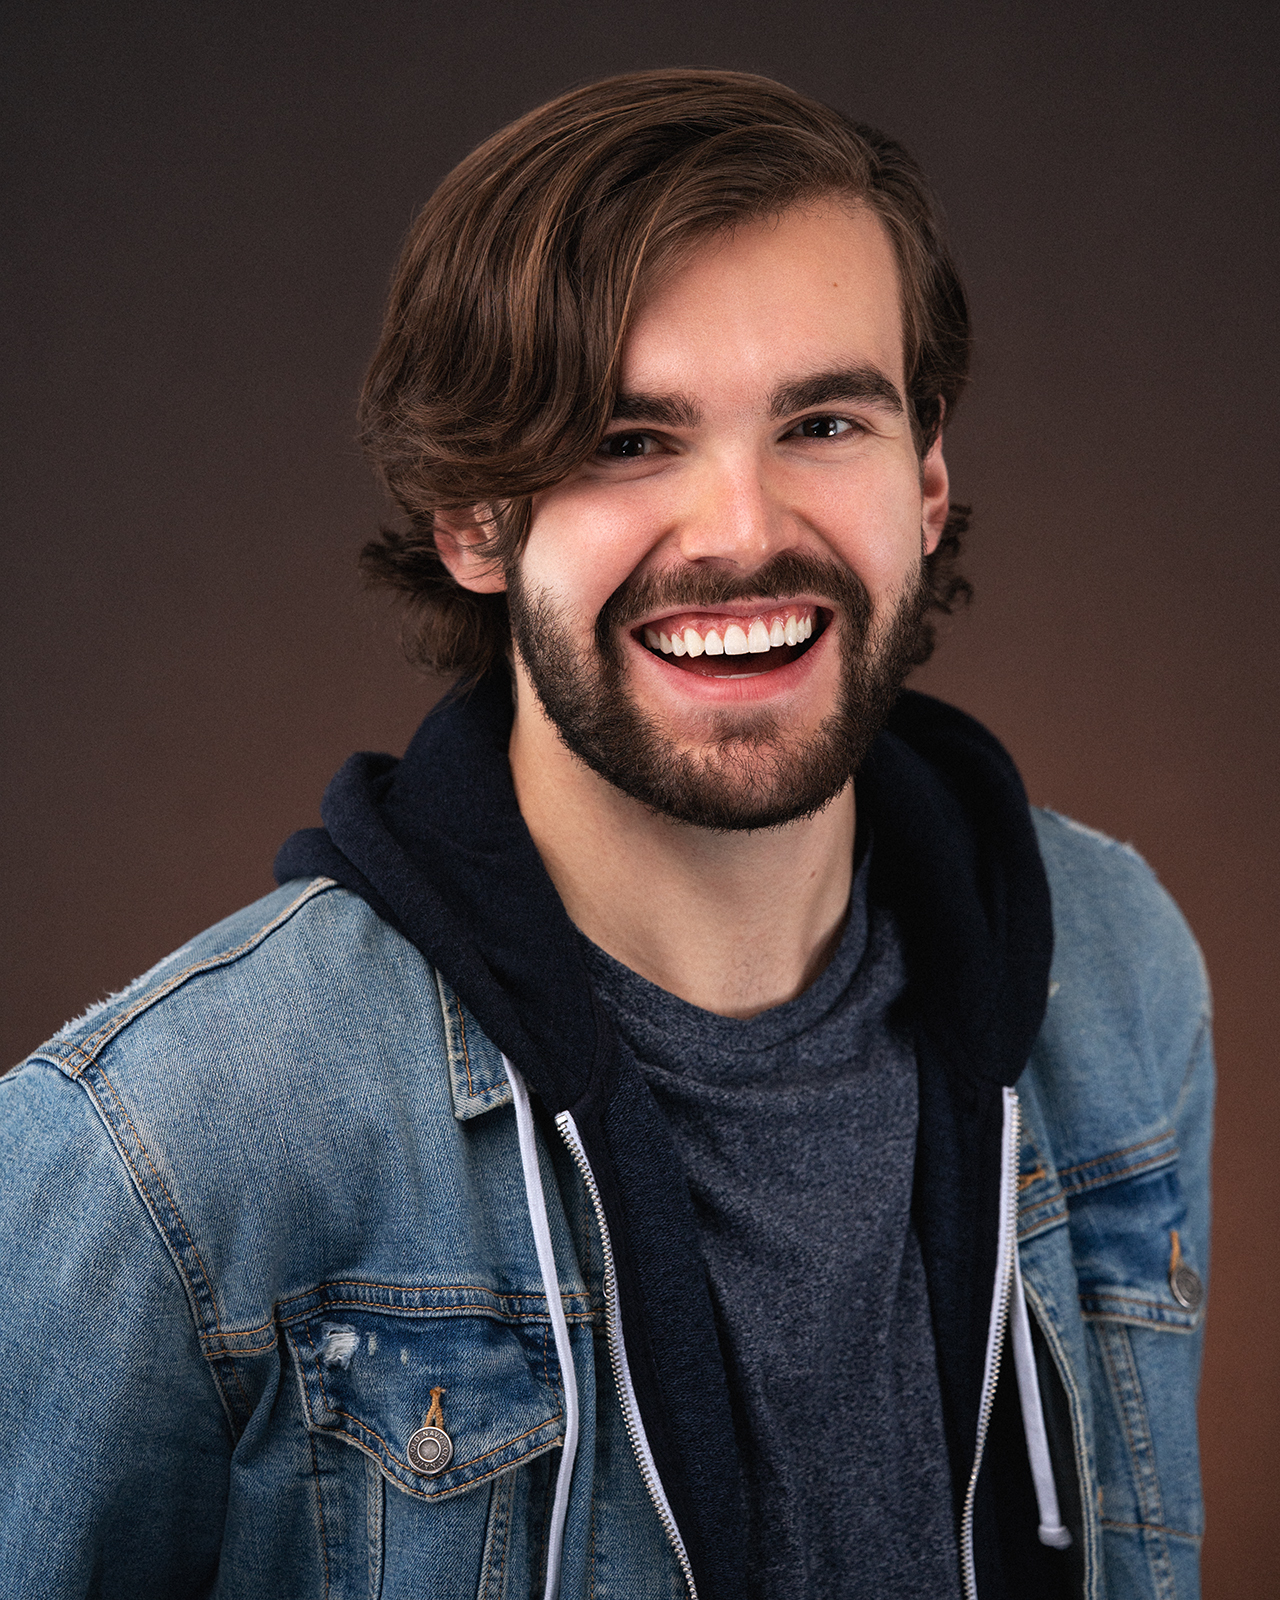 Headshot of Noah Sisson in a jean jacket, smiling.